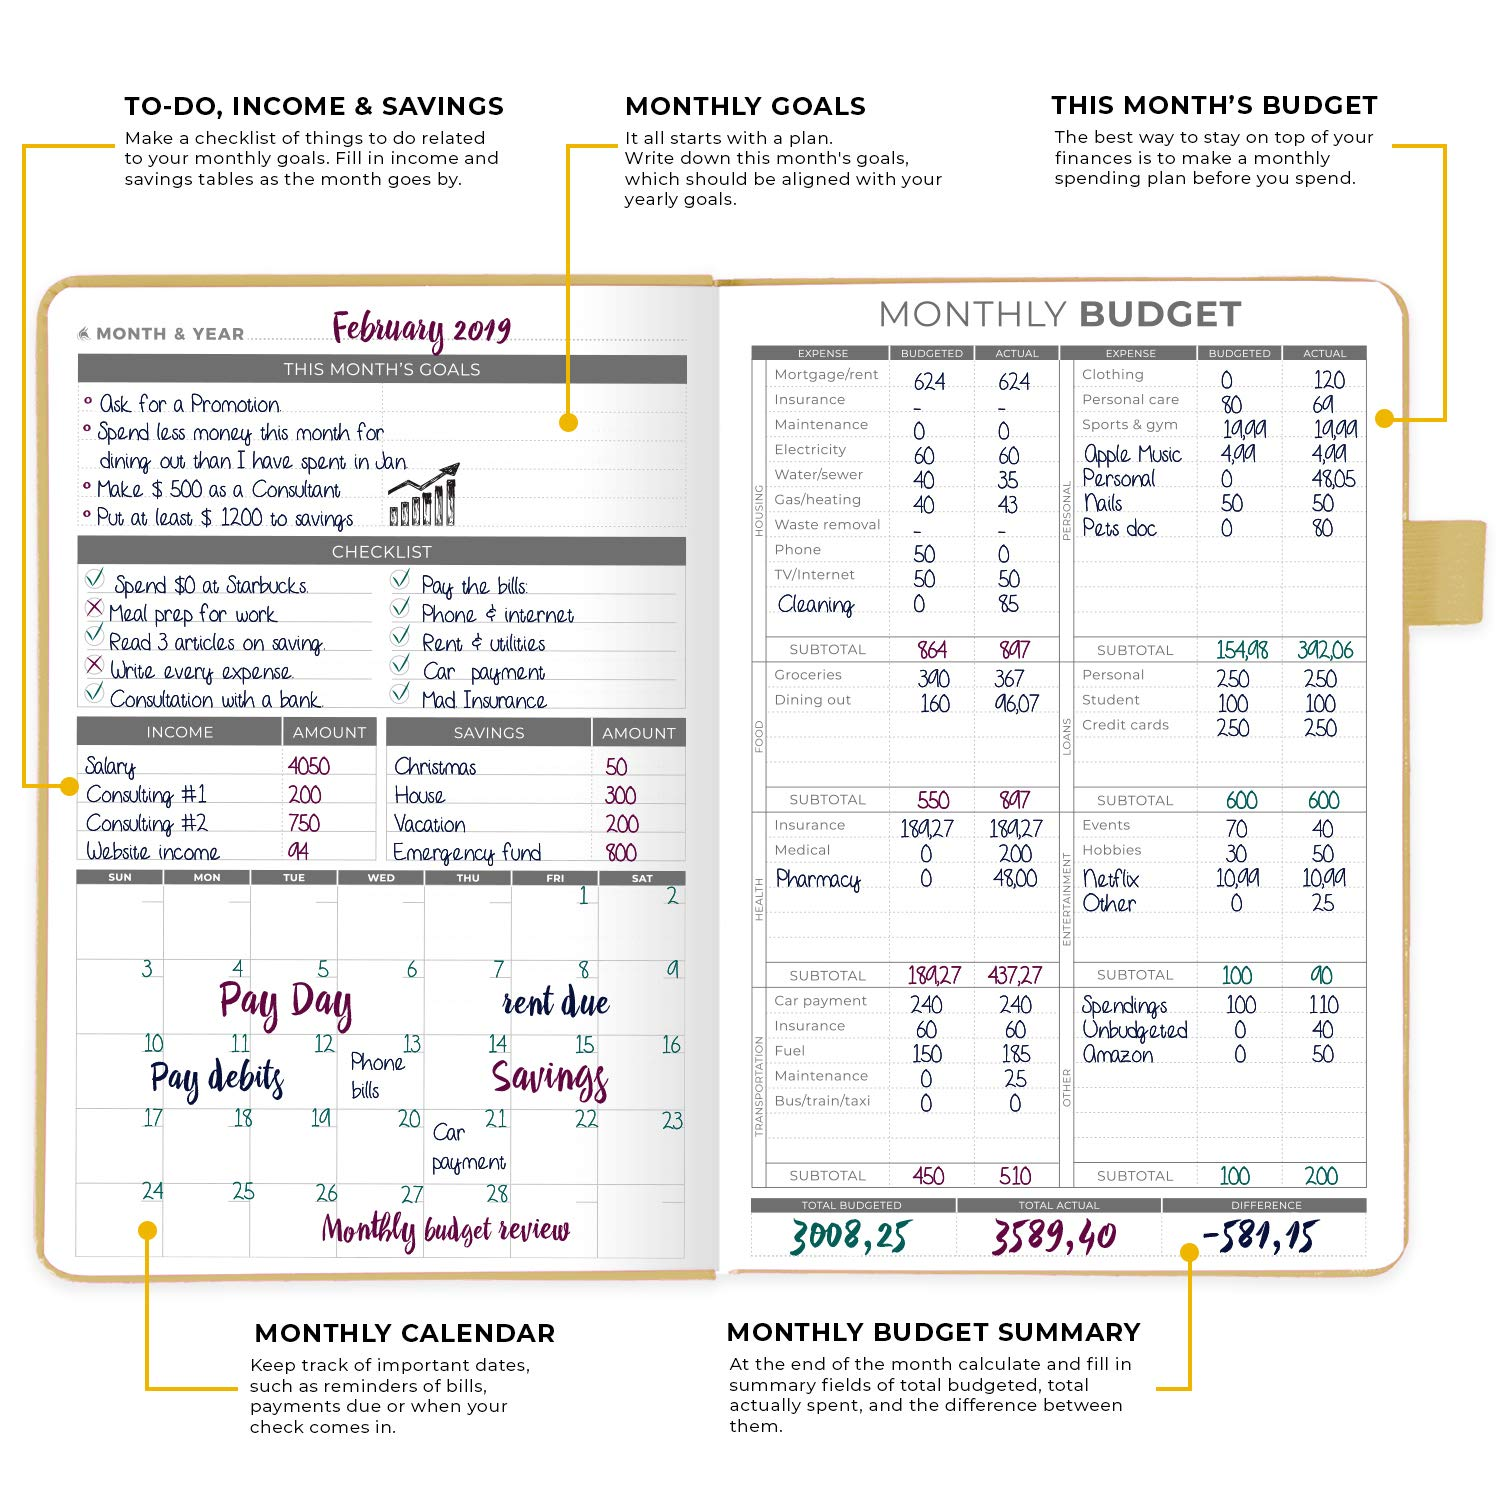 Expense Tracker Notebook Clever Fox Budget Planner Peach Pink Hardcover Undated Finance Planner /& Accounts Book to Take Control of Your Money Start Anytime Monthly Budgeting Journal A5 Size